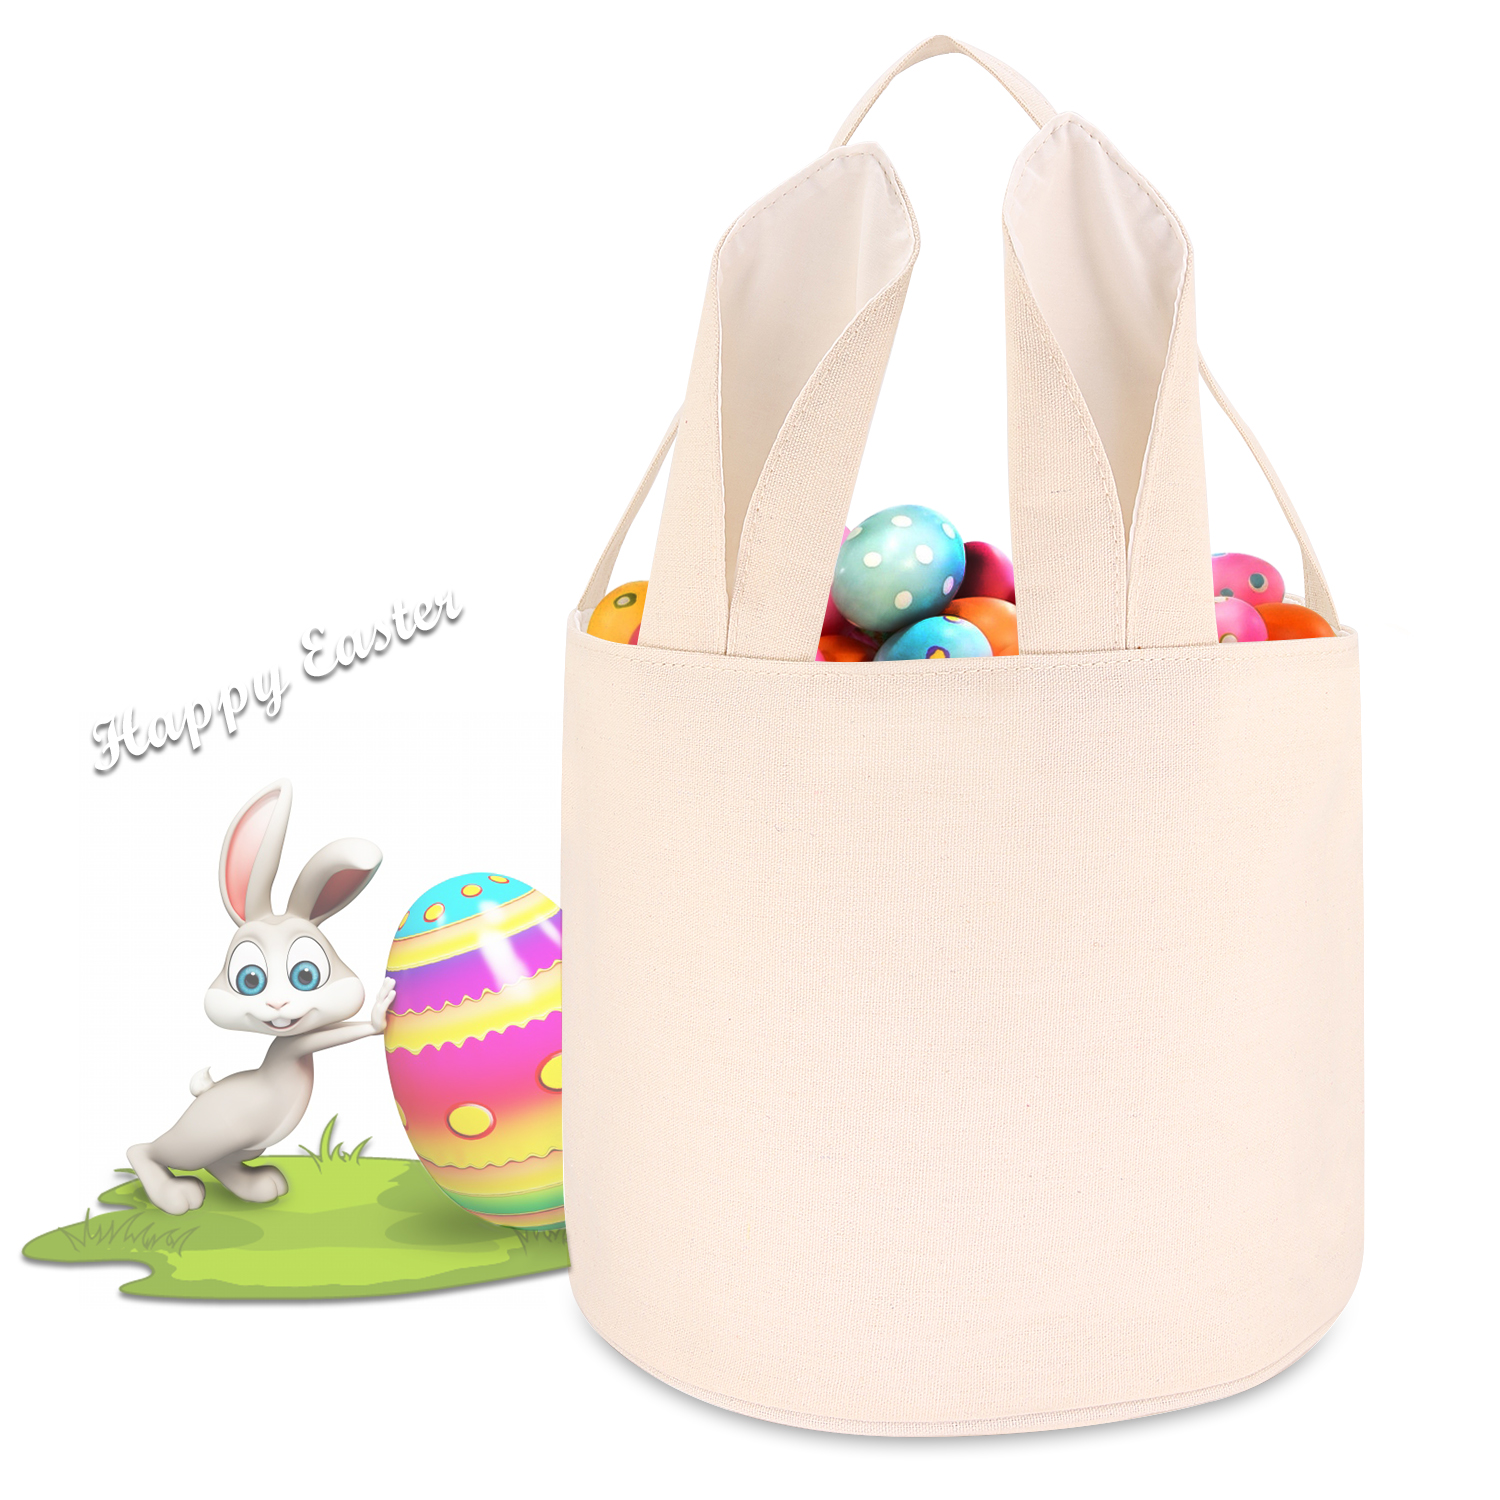 27c990c27378 Cylinder Bunny Ear Easter Basket, Dual Layer Canvas Bag With Bunny Design  for Easter Egg Hunt Basket Carrying Eggs Gifts for Kids Holding Toys Books  ...